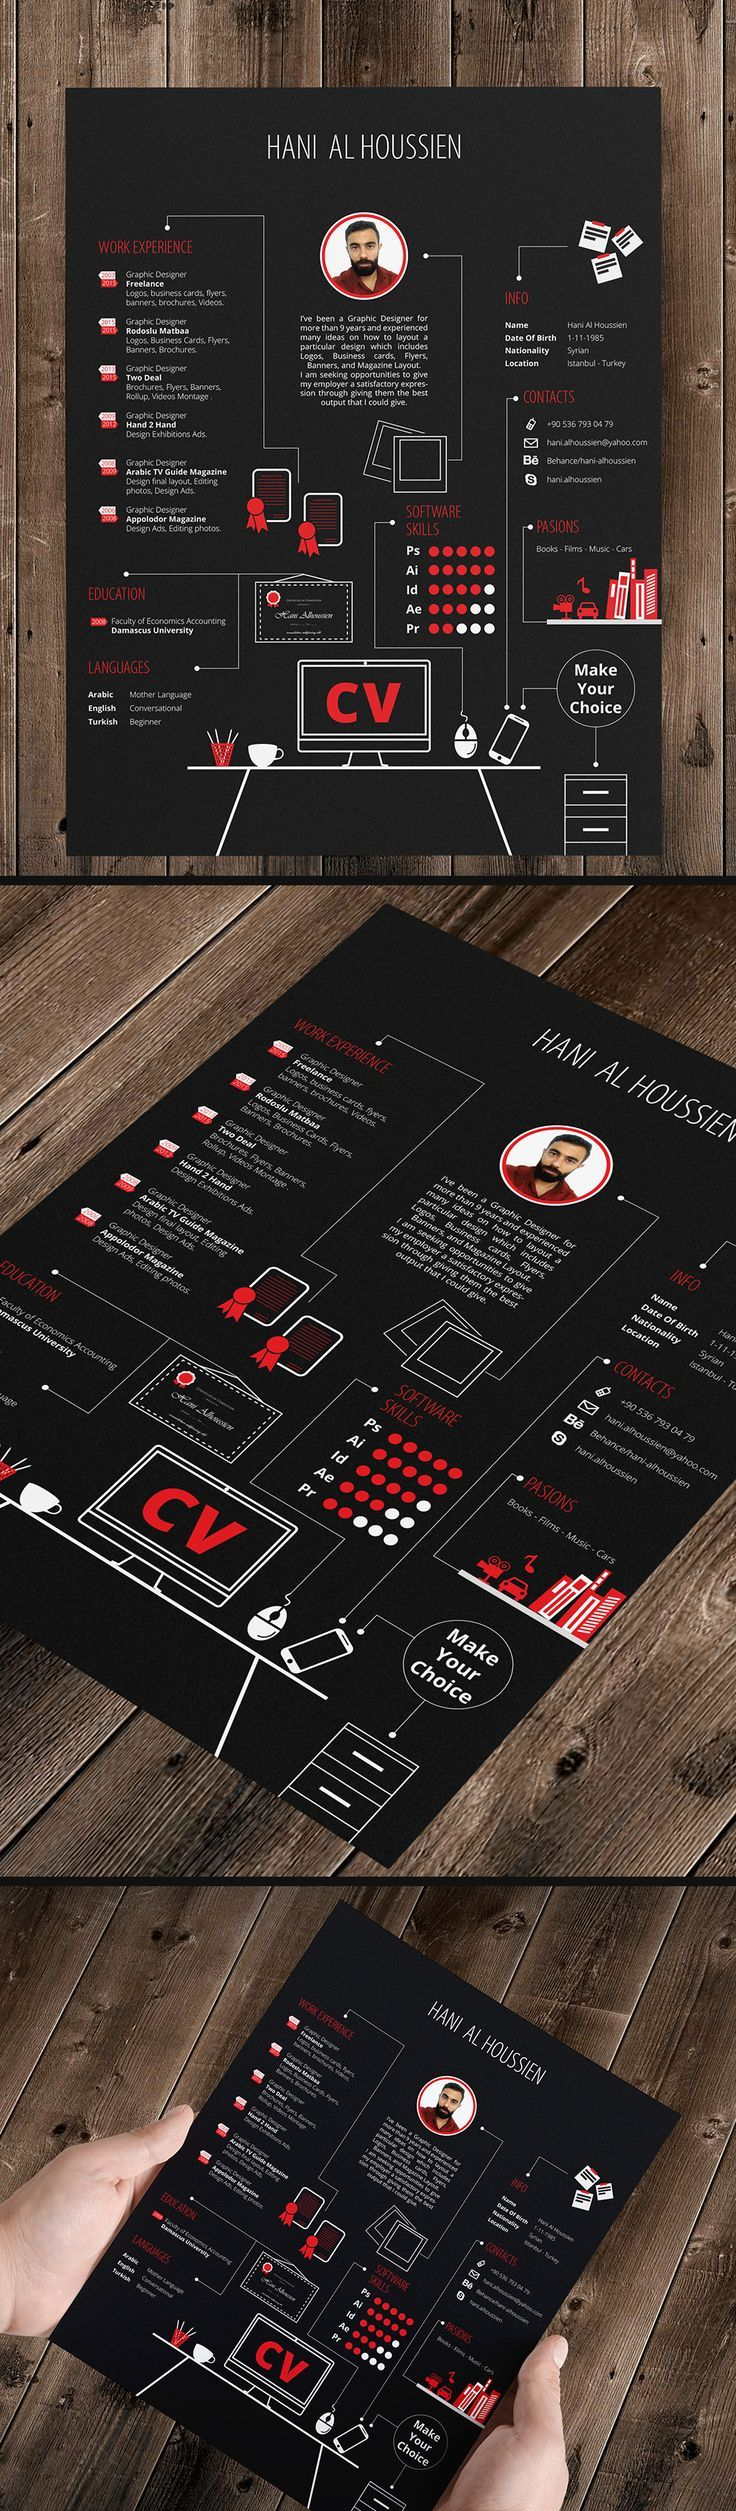 cv graphic designer on behance  if you like ux  design  or